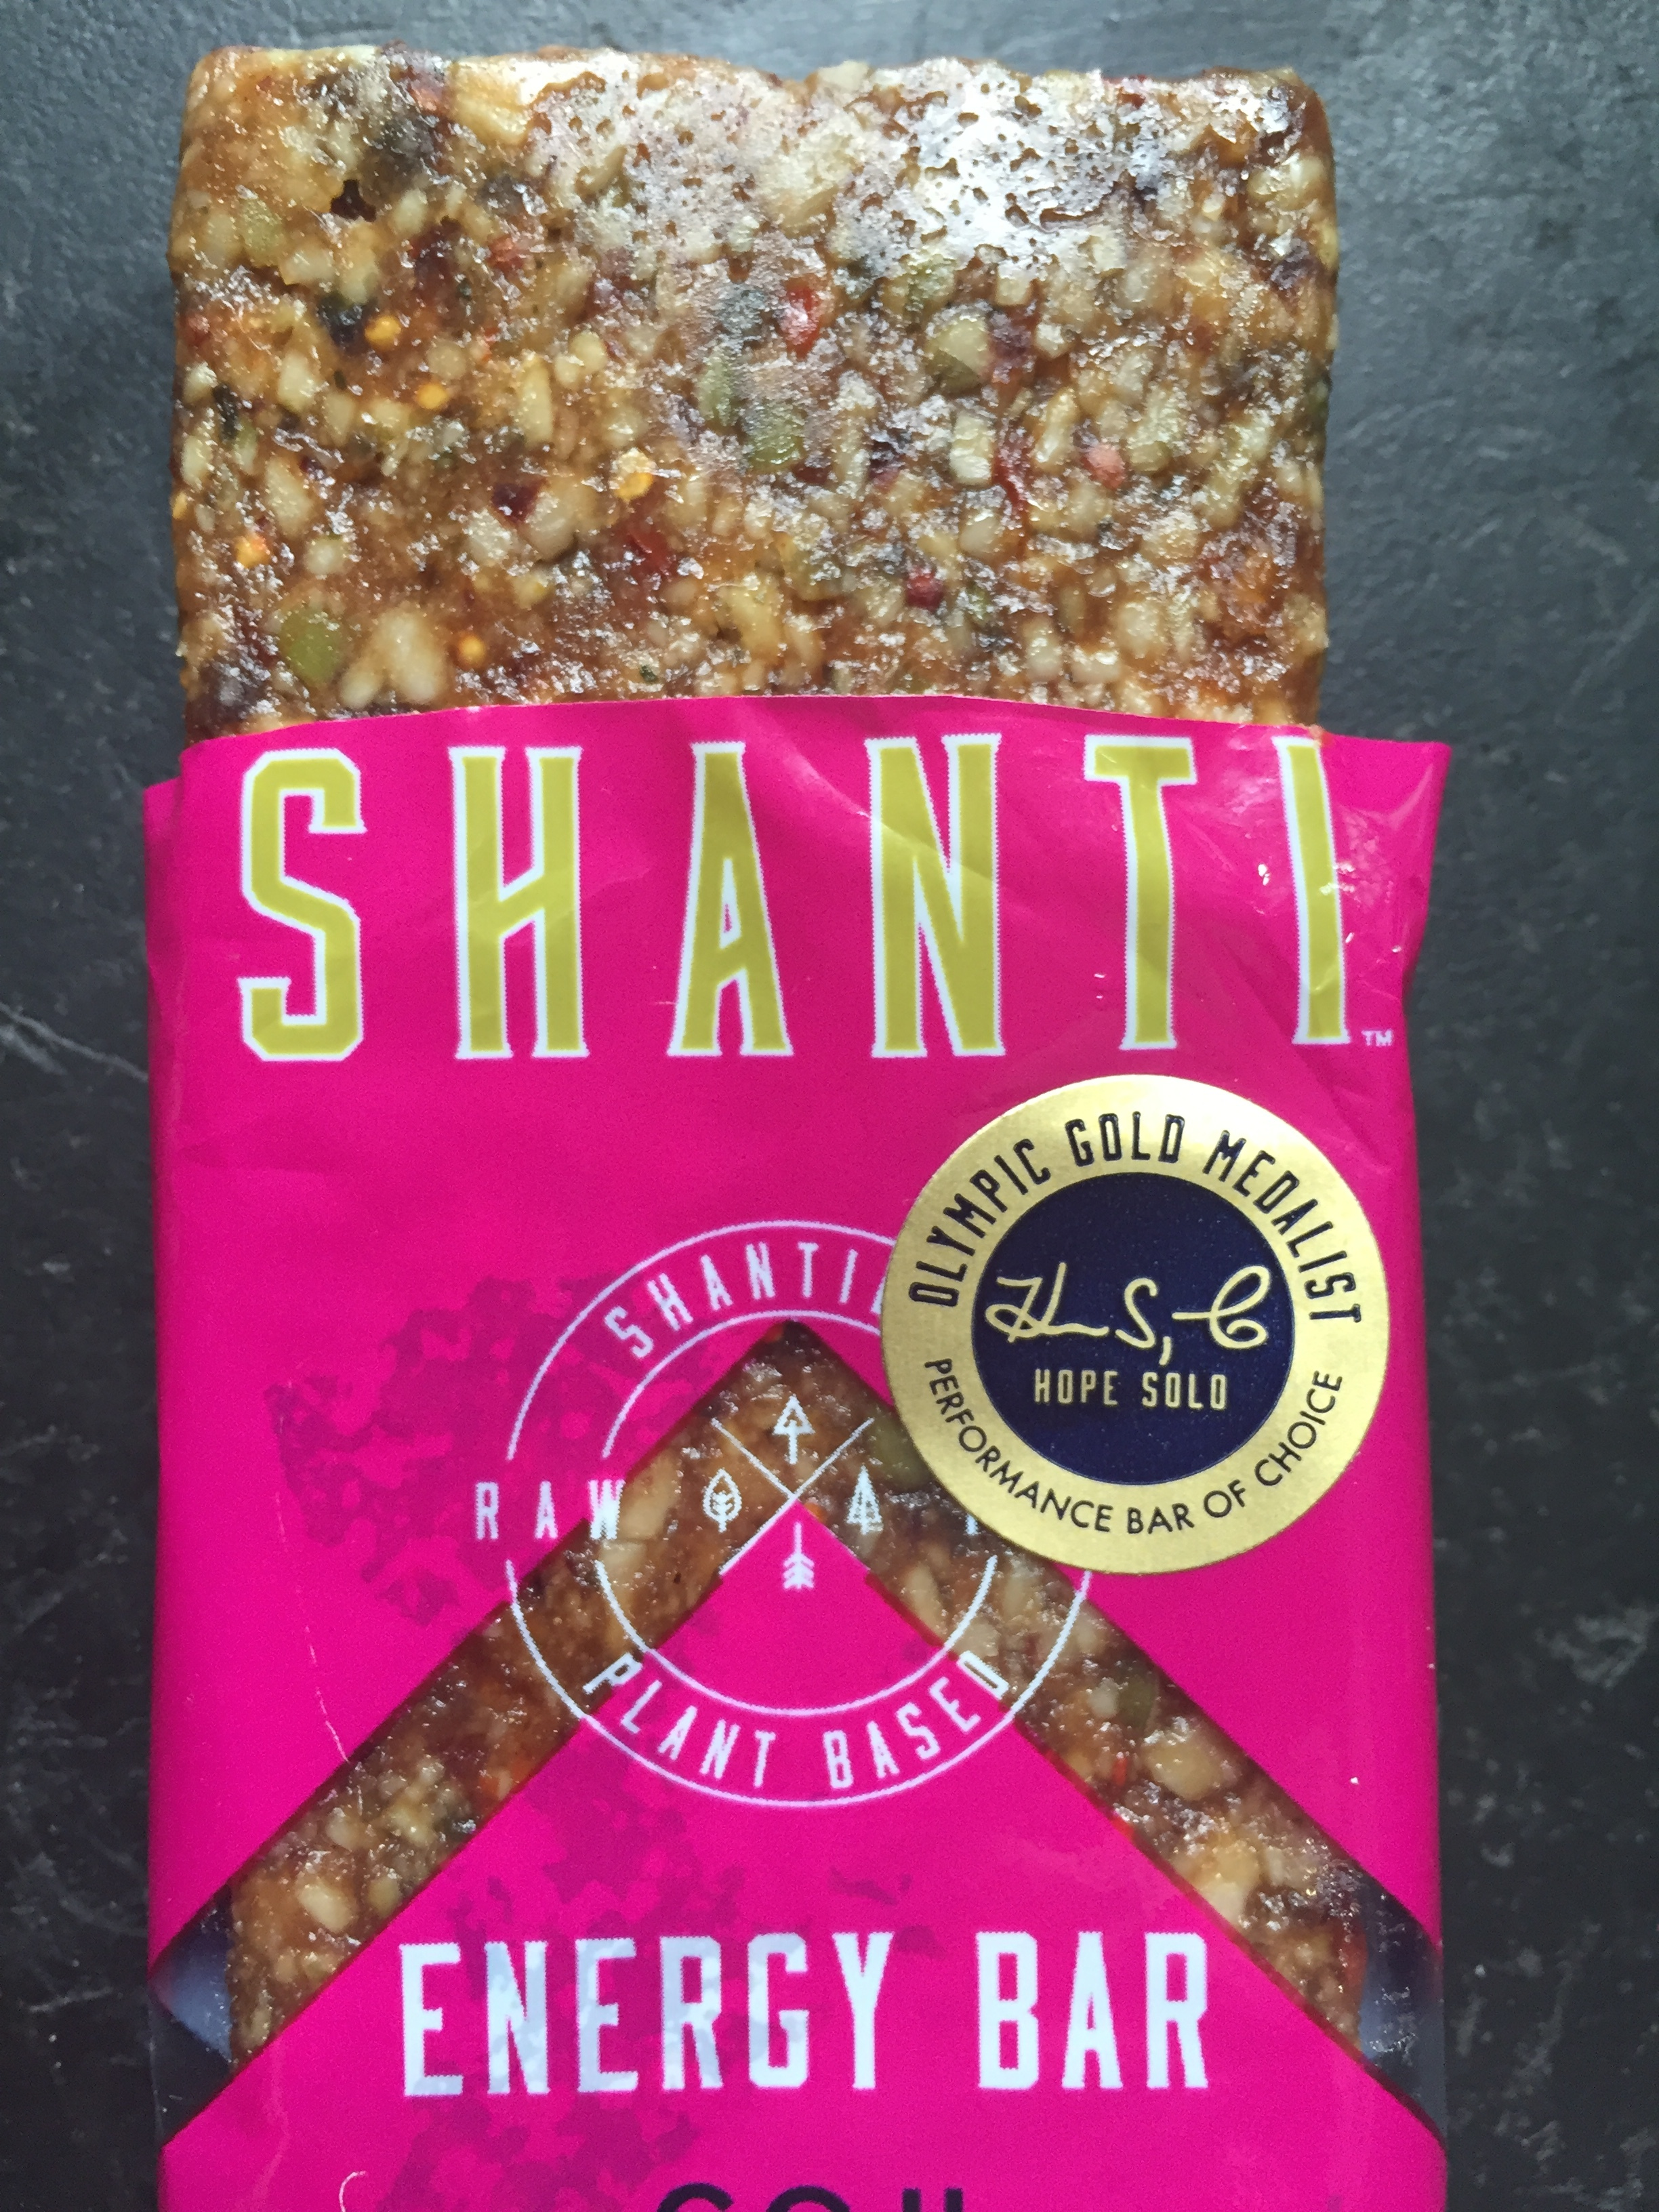 Shanti energy bar in with goji, sweet berries and hemp.